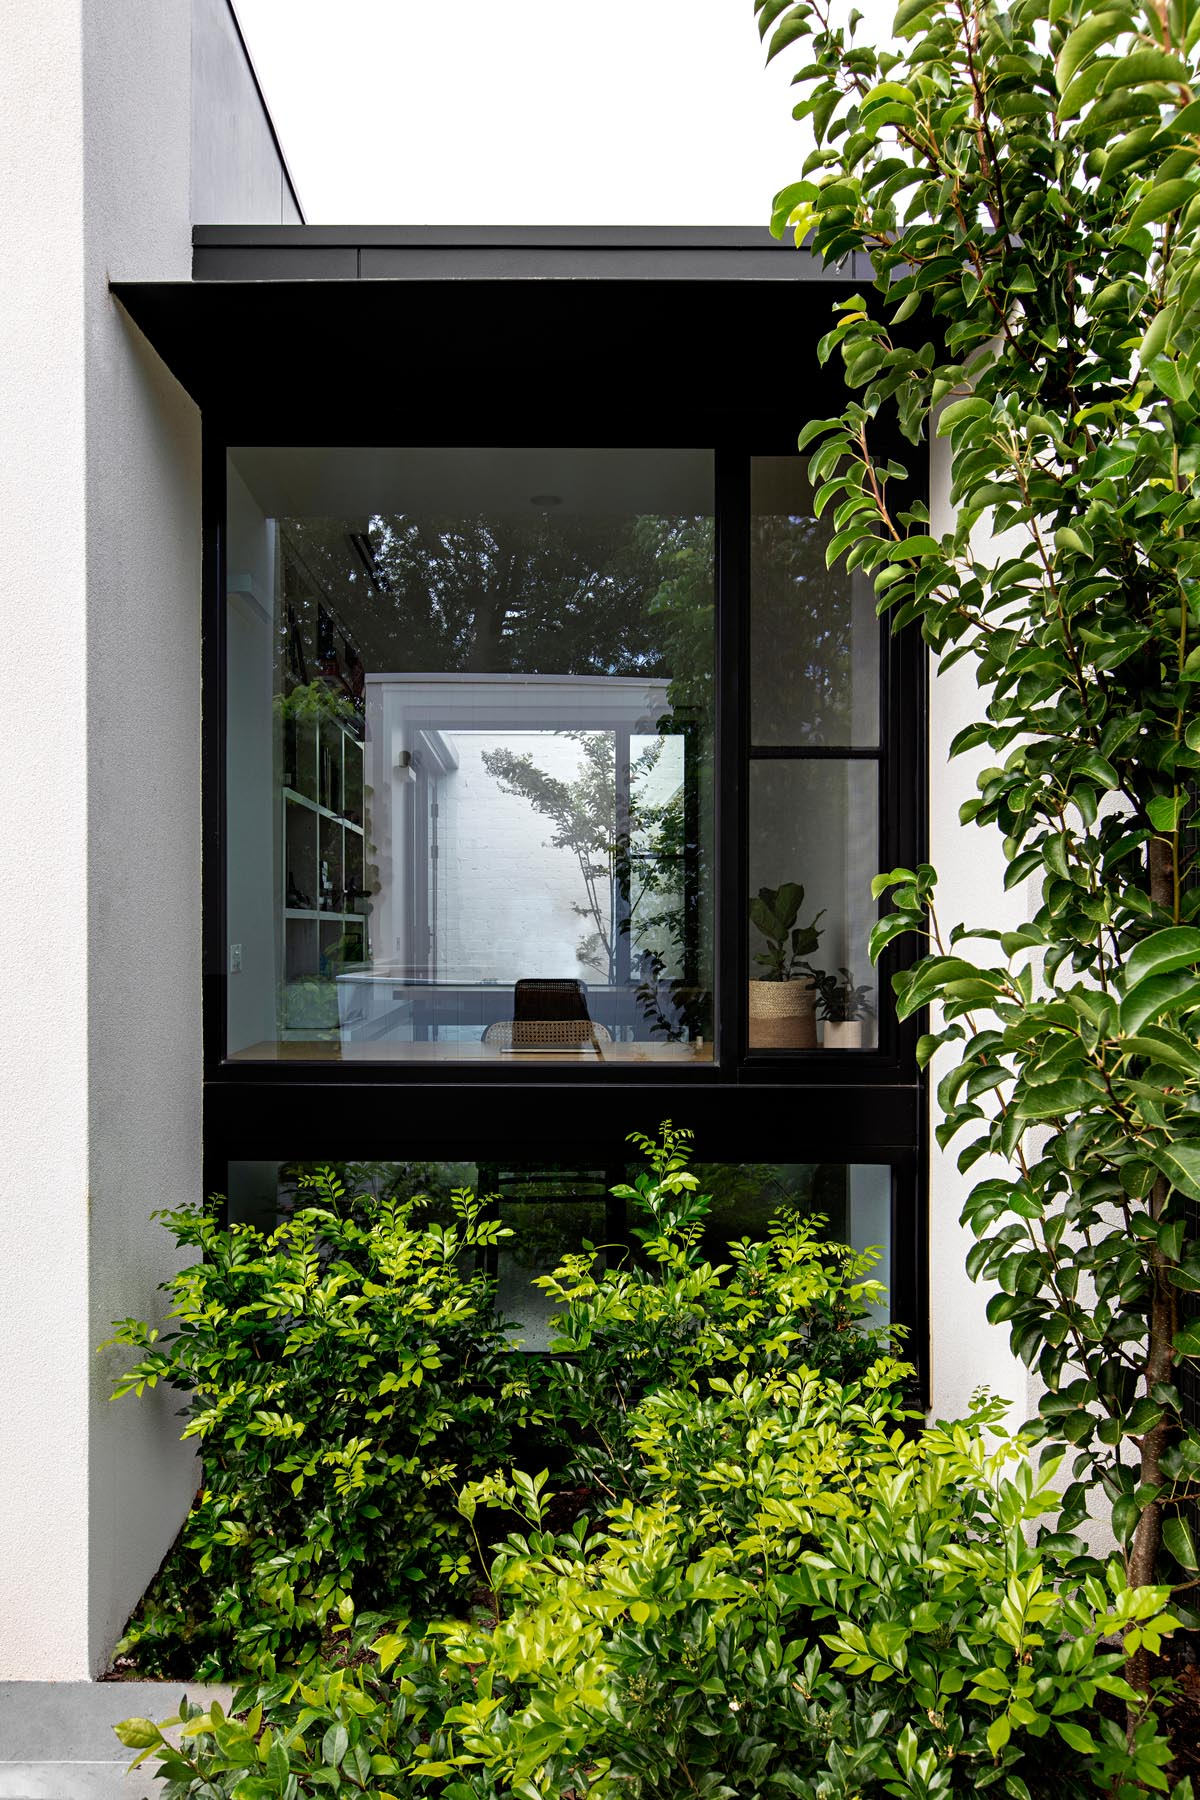 A home office with black window frames that has views of the garden.